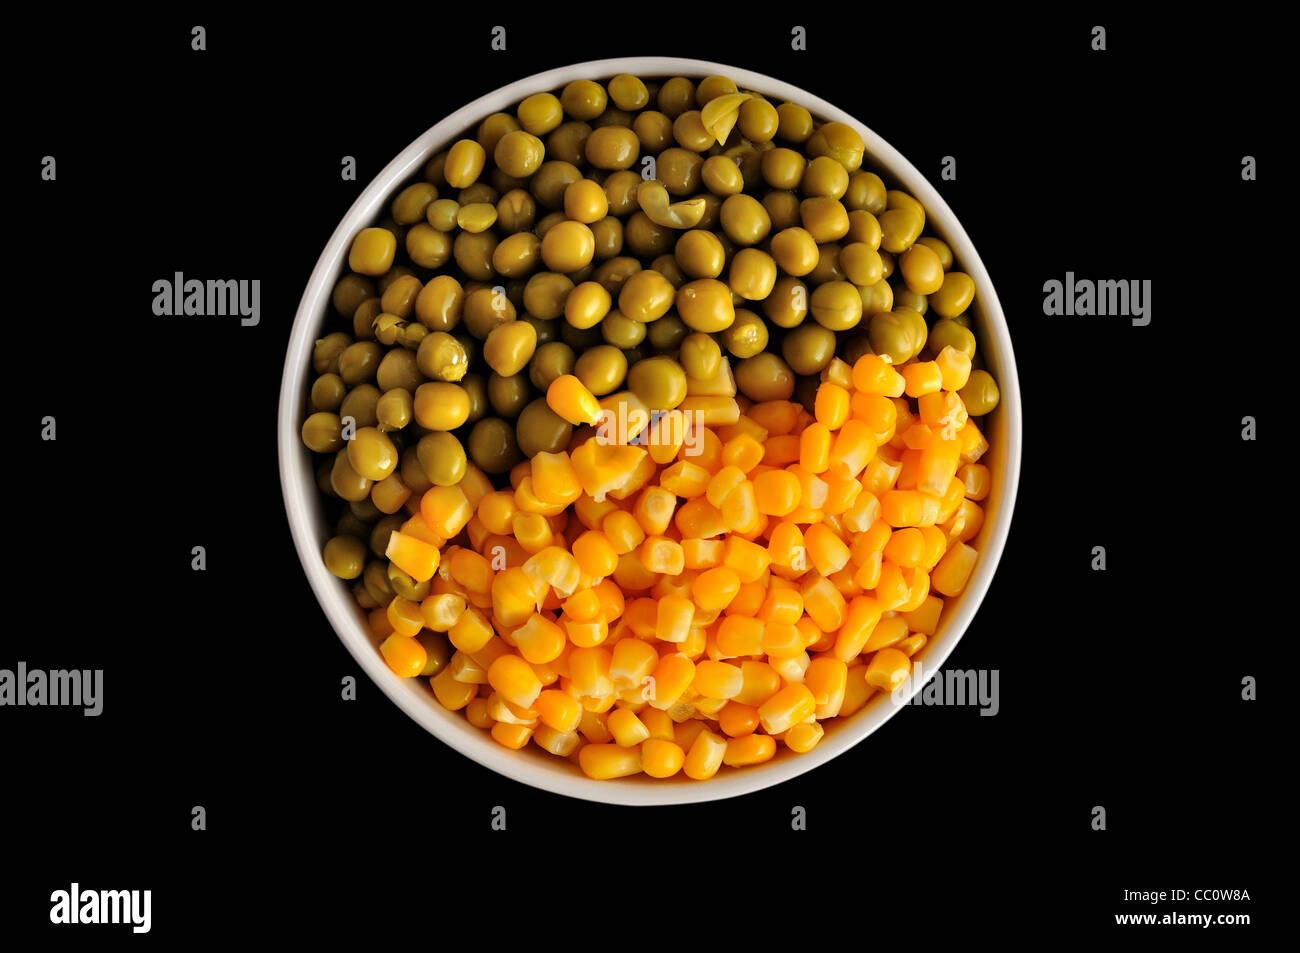 a plate with corn and peas, isolated, on a black background Stock Photo